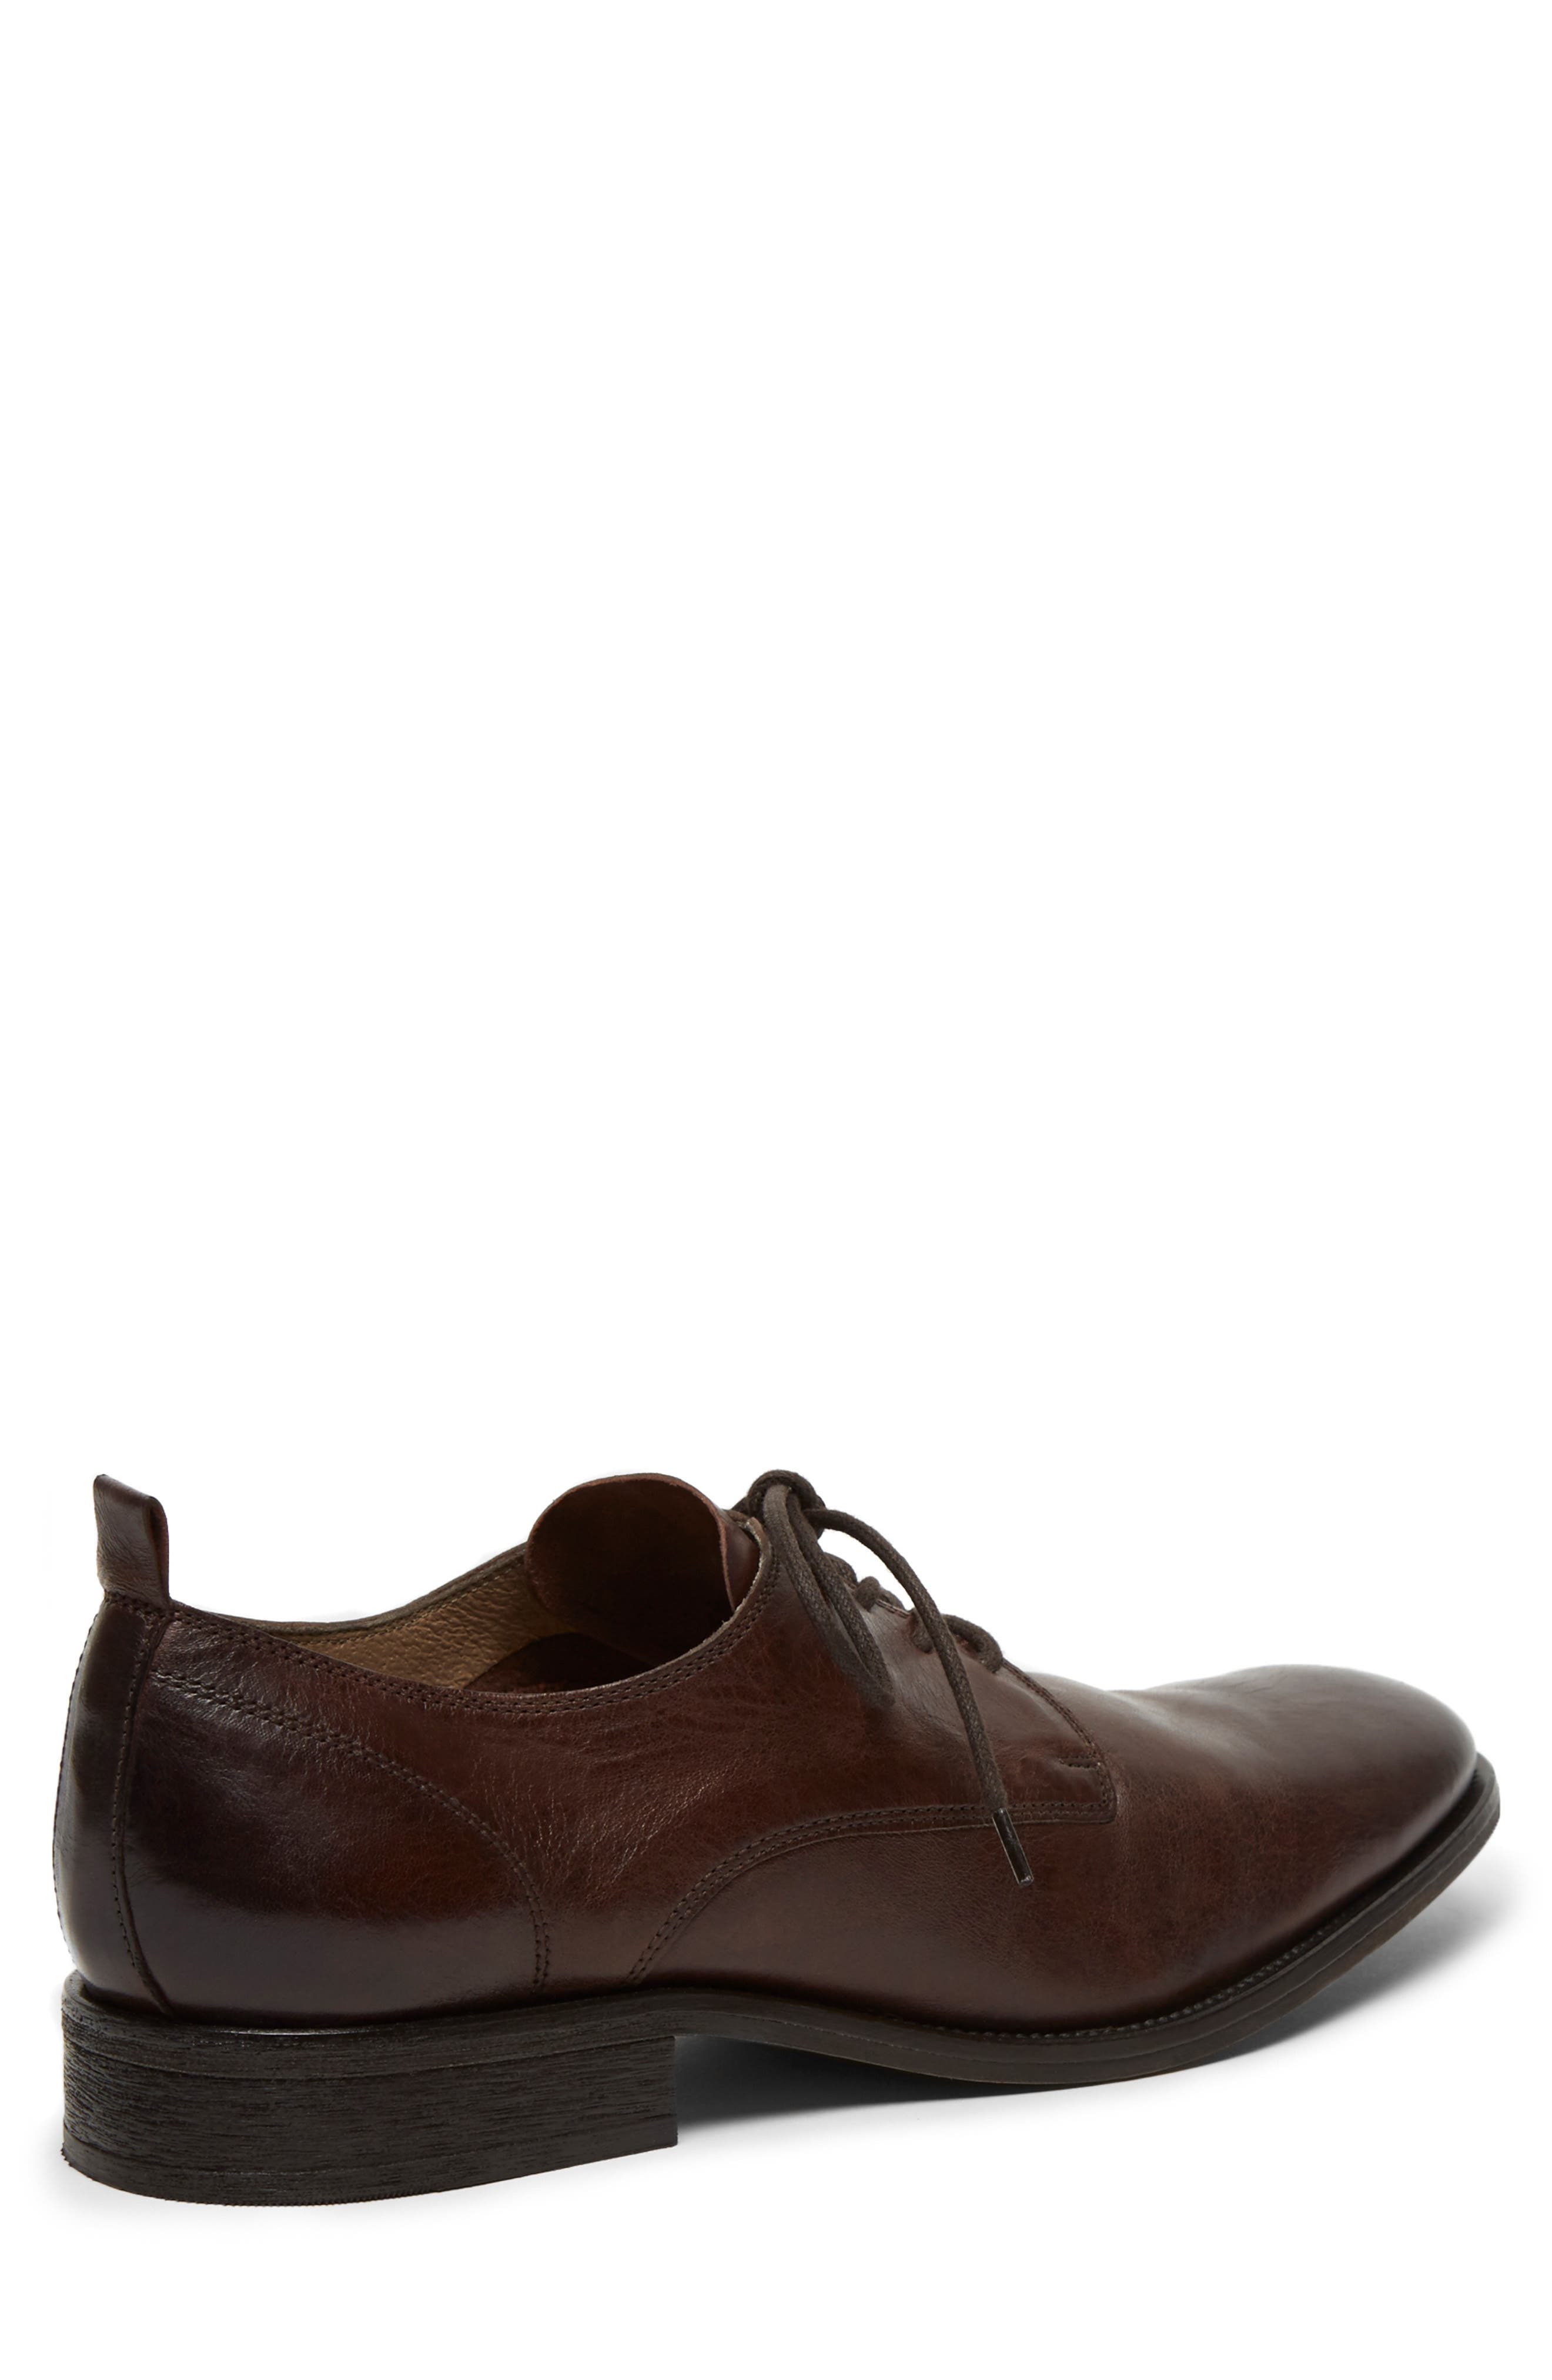 Indio Plain Toe Derby,                             Alternate thumbnail 5, color,                             BROWN LEATHER